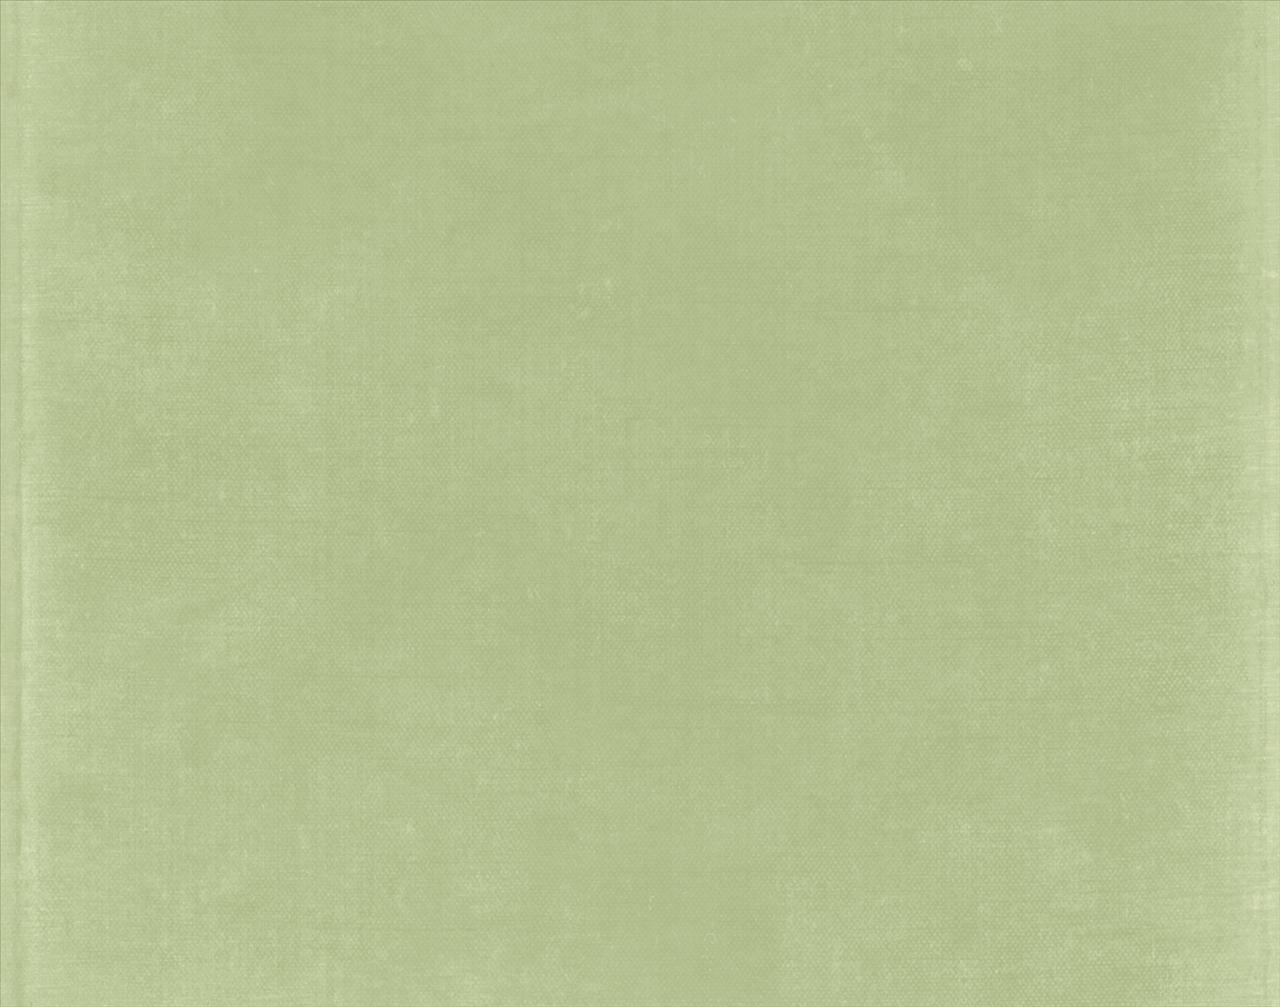 pin wallpaper sage green soft peach bamboo leaf stripe